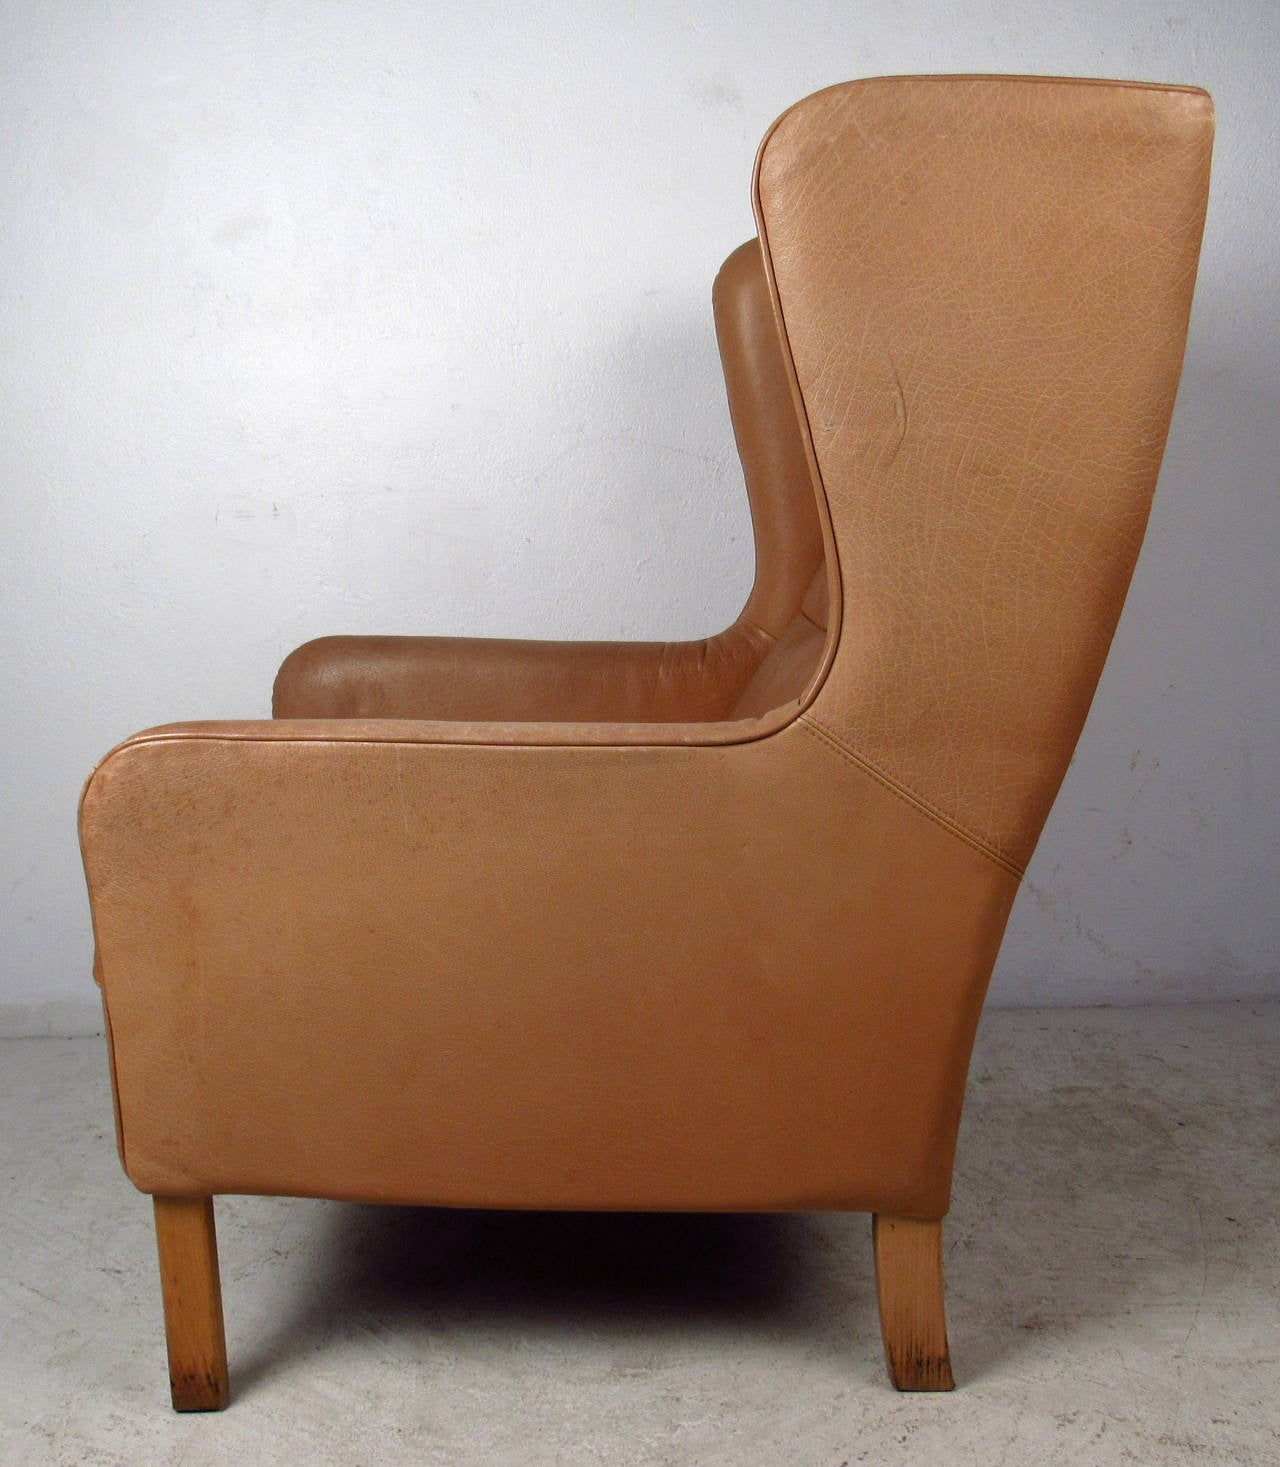 Mid century modern tufted leather wingback lounge chair for Mid century modern leather chairs